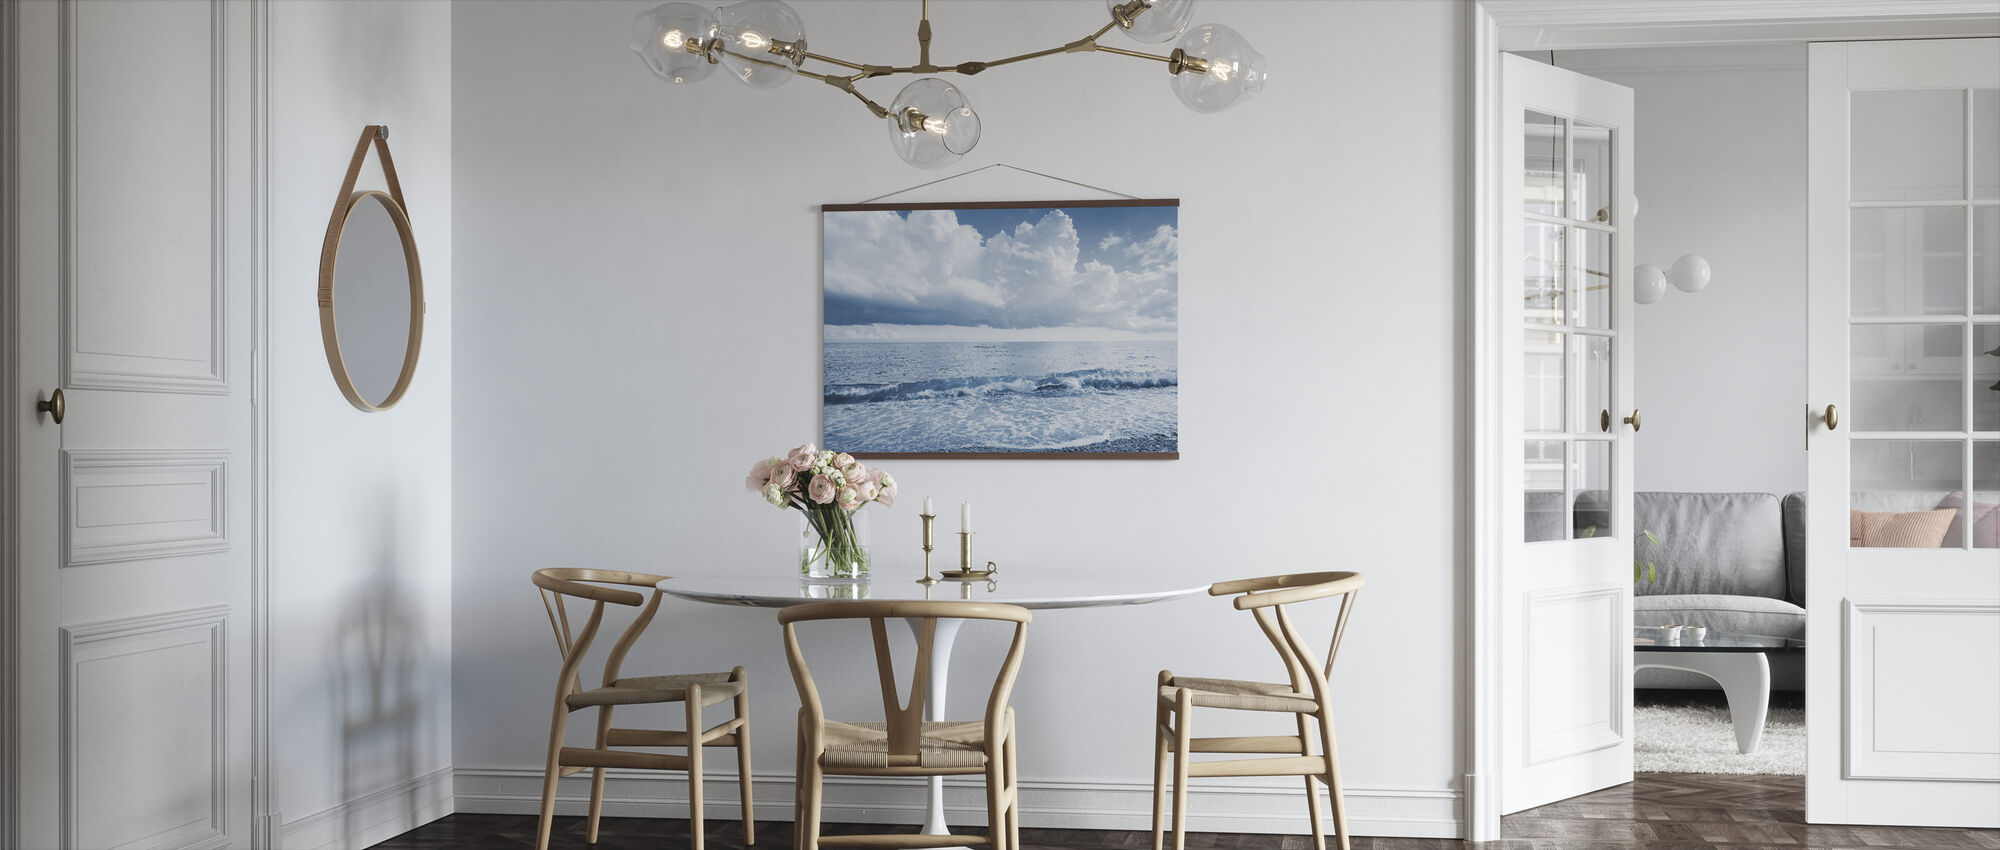 Sea and Dramatic Clouds - Poster - Kitchen